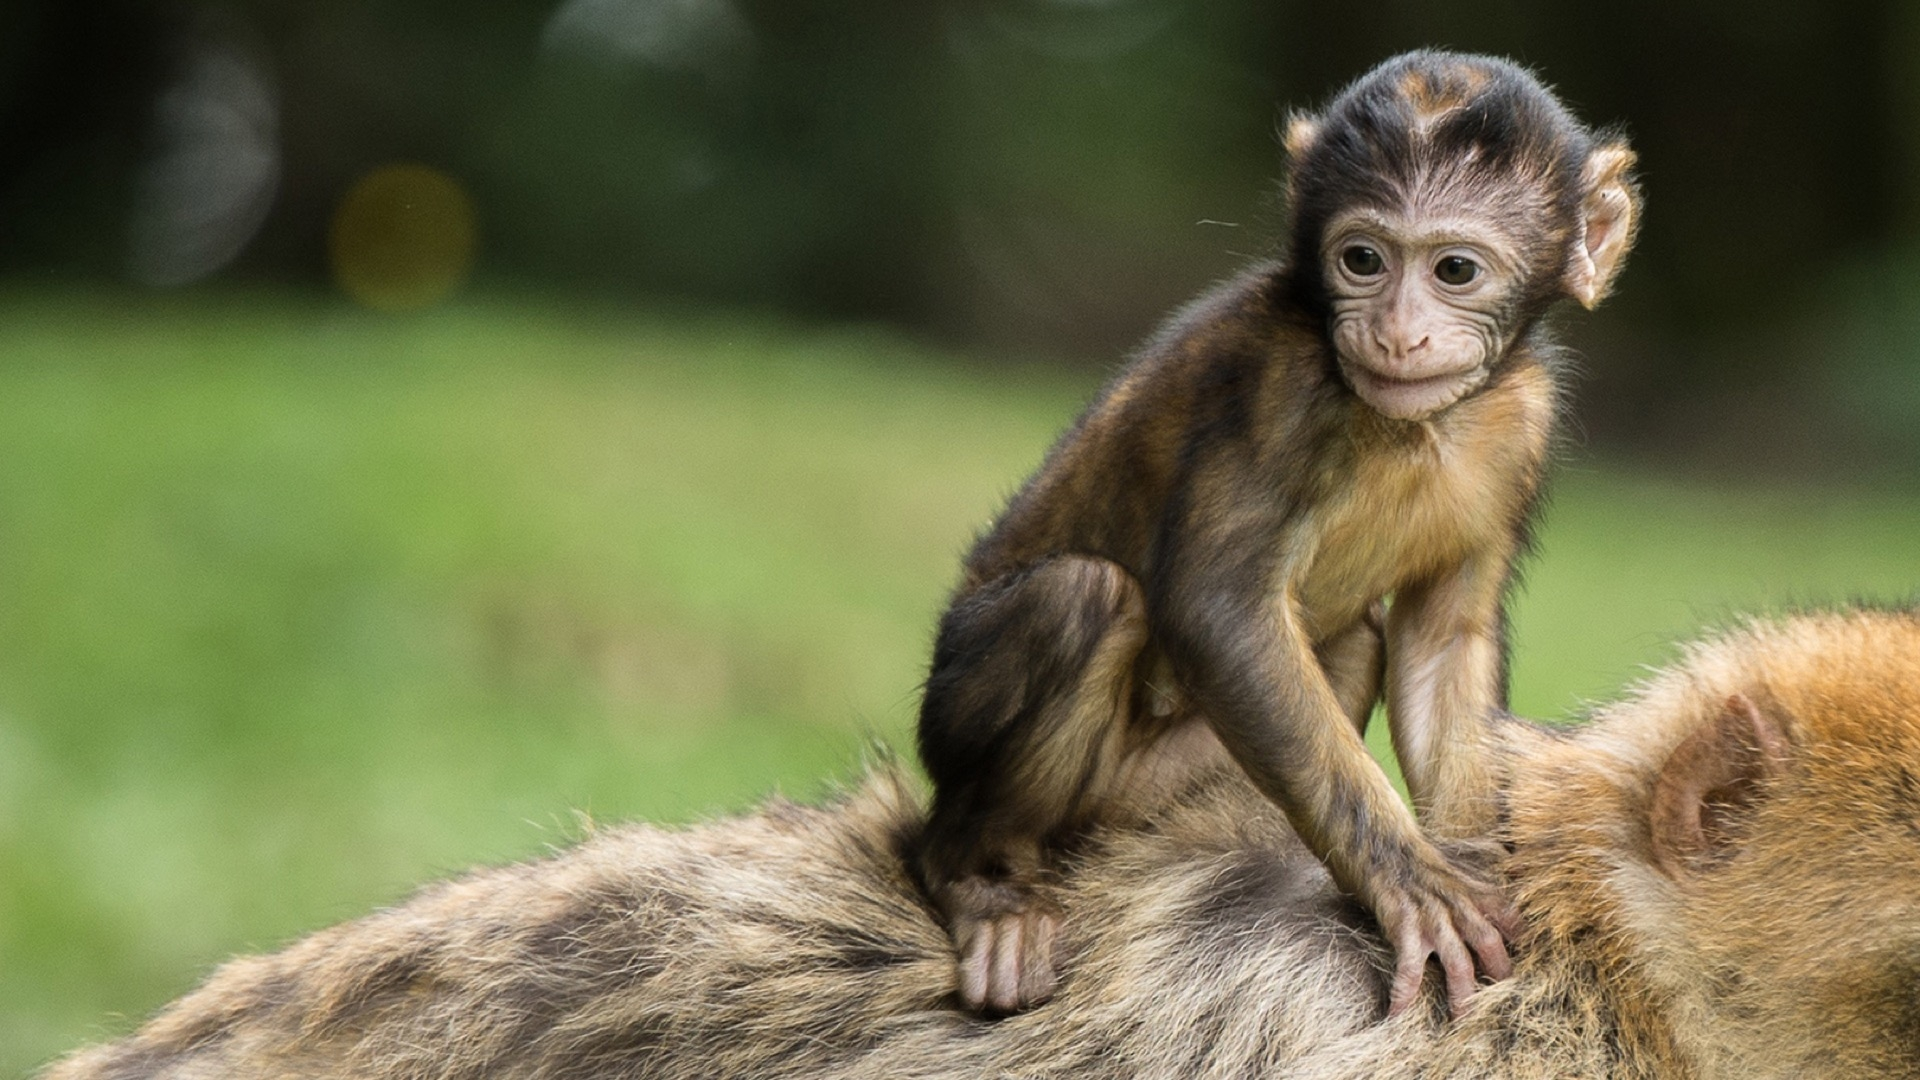 monkey baby number 2